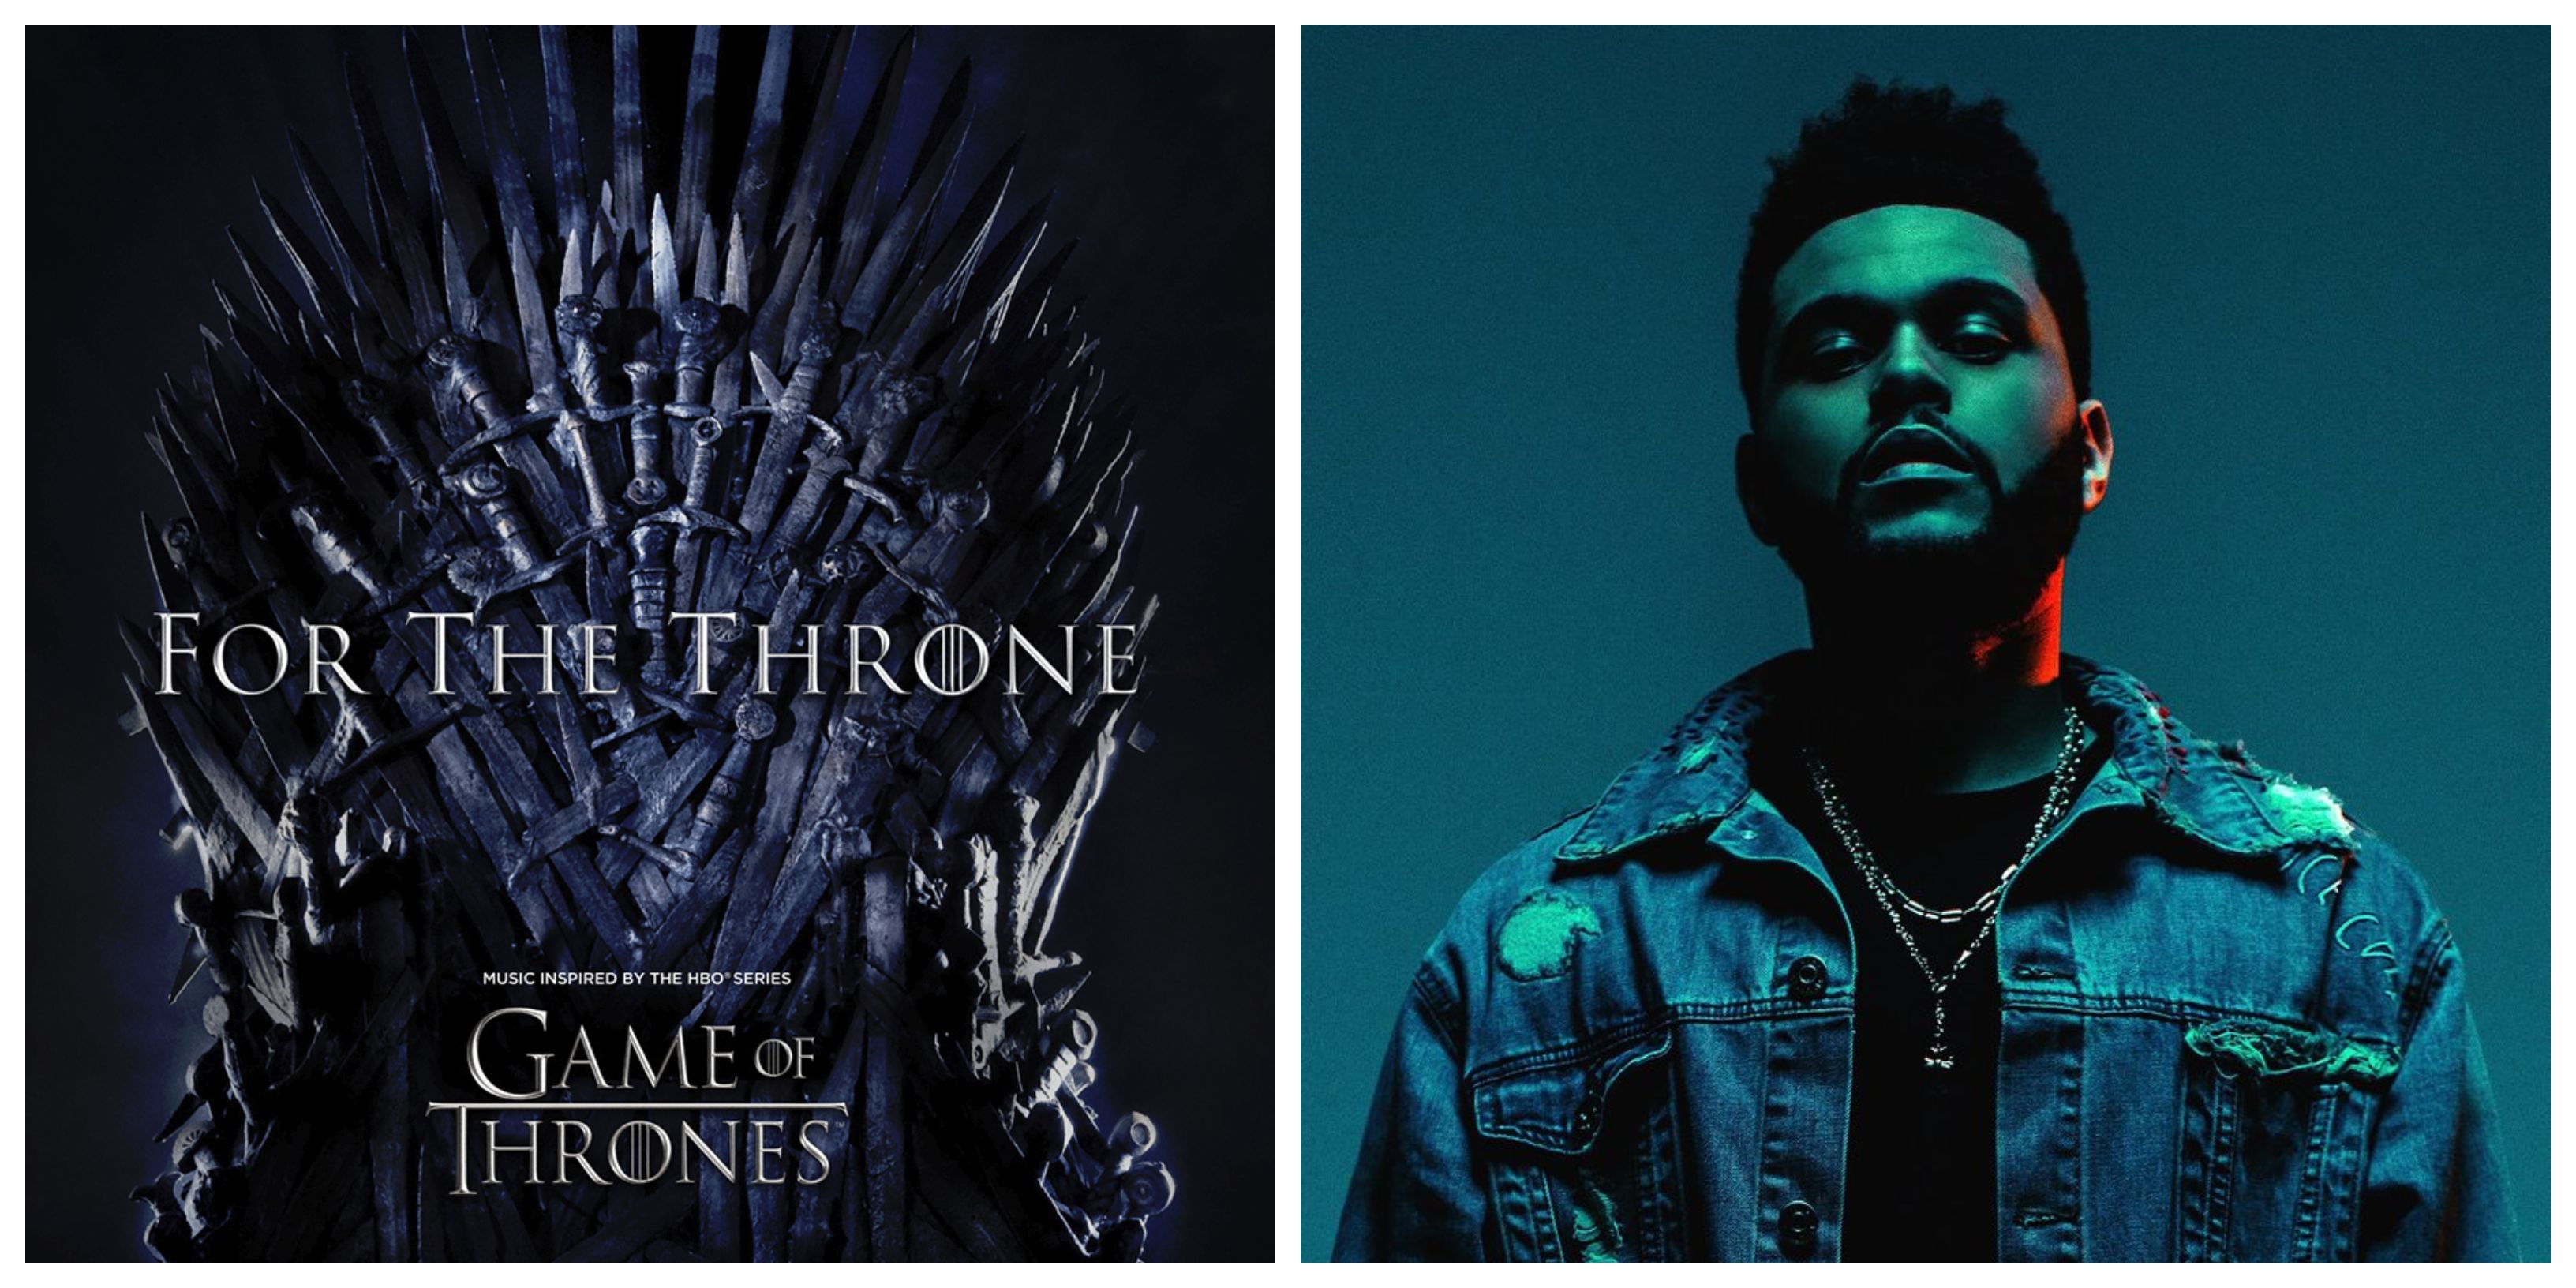 Game Of Thrones' Soundtrack Announced / 'For The Throne' To